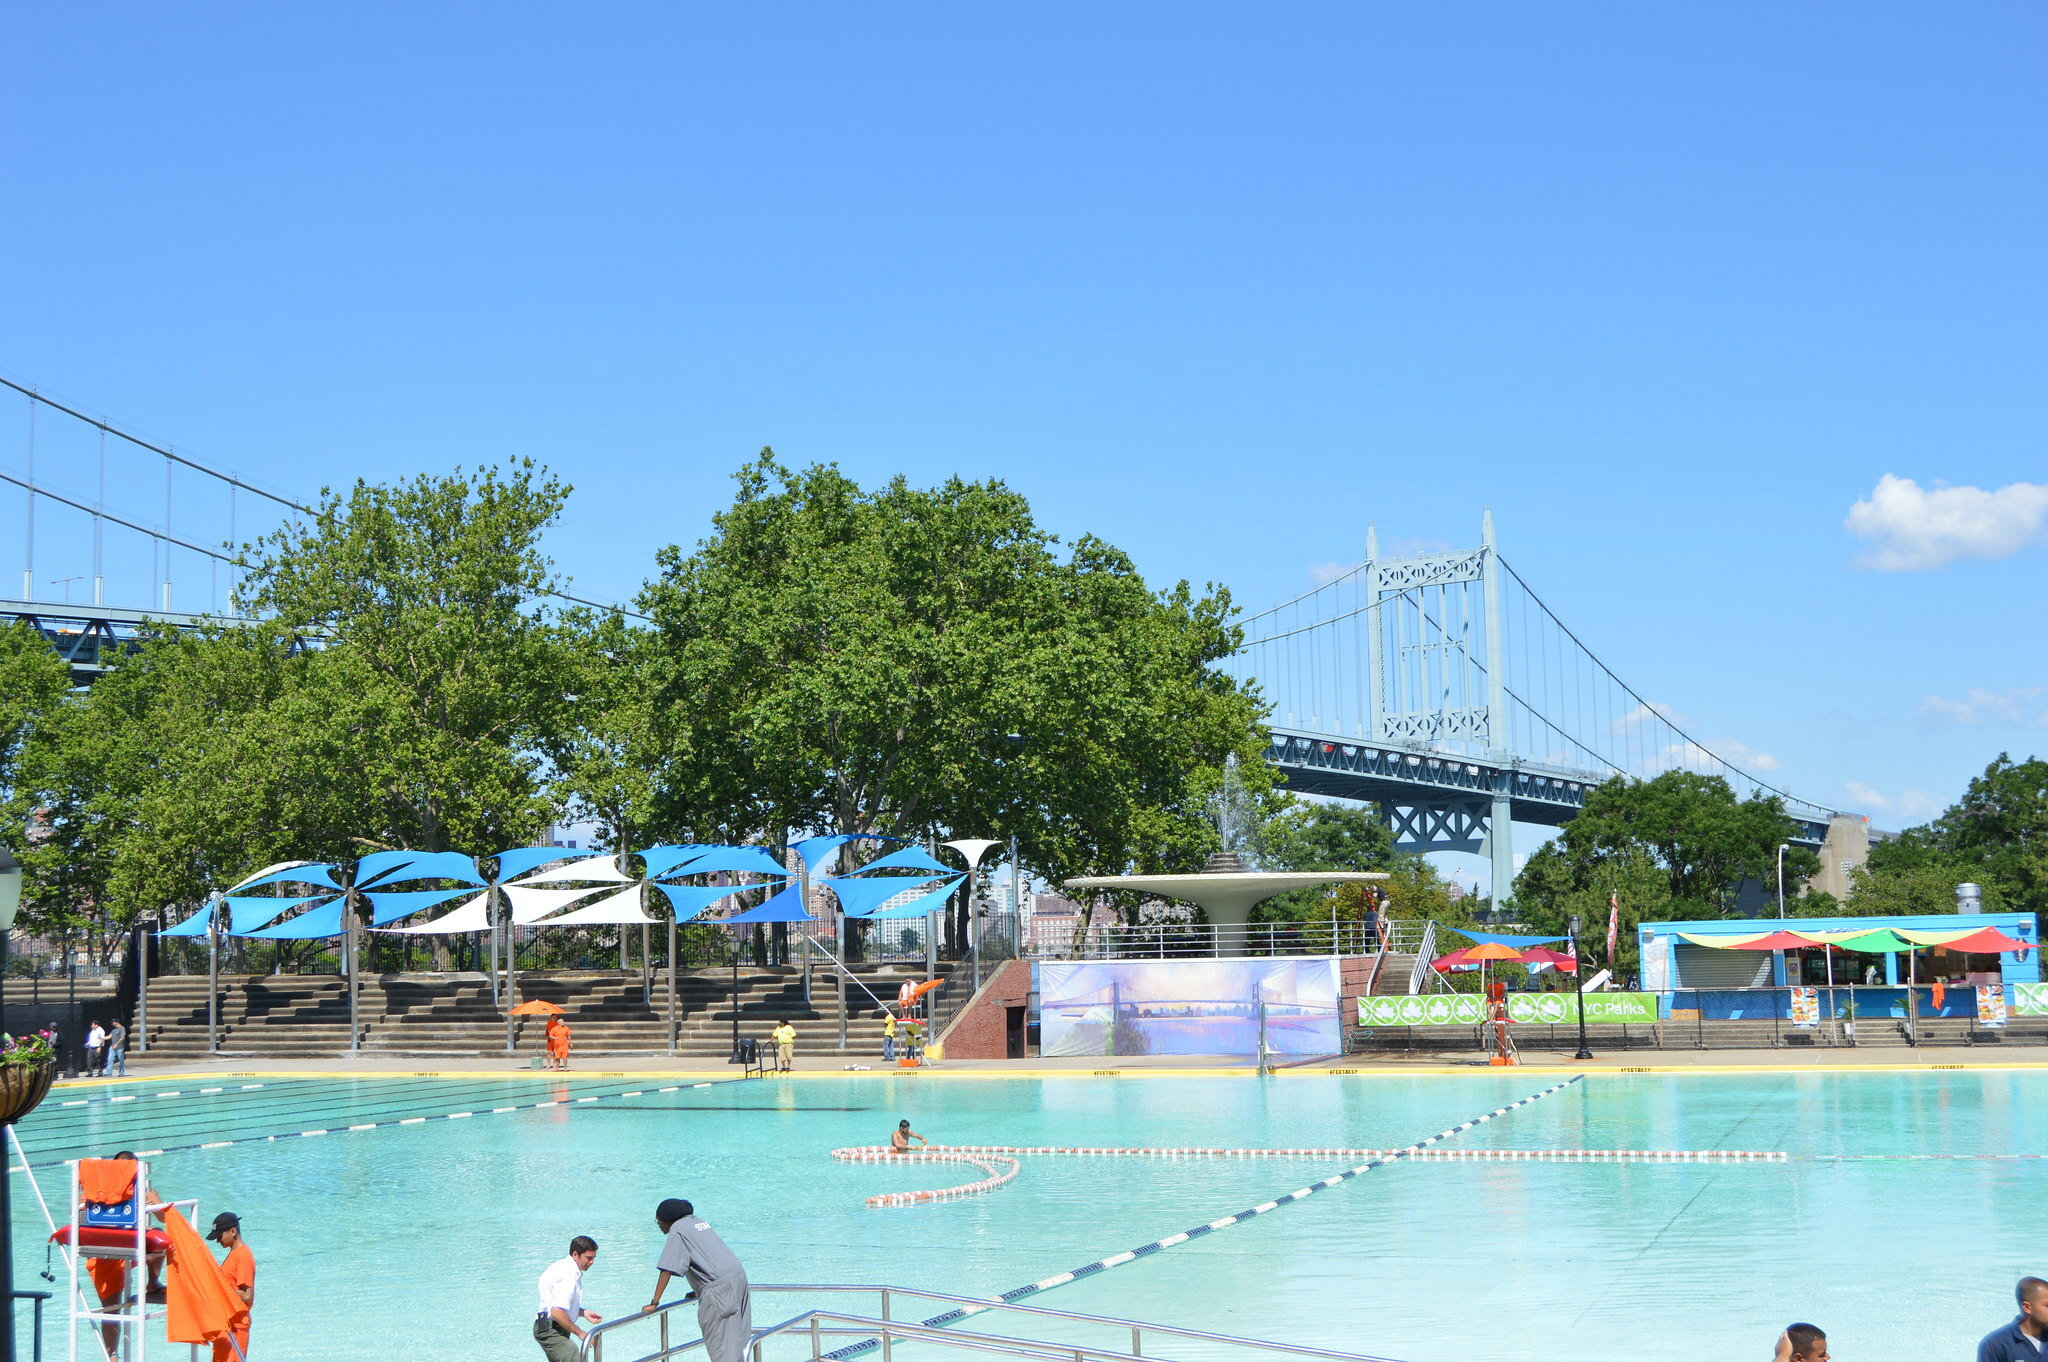 NYC pools officially open for the summer today!